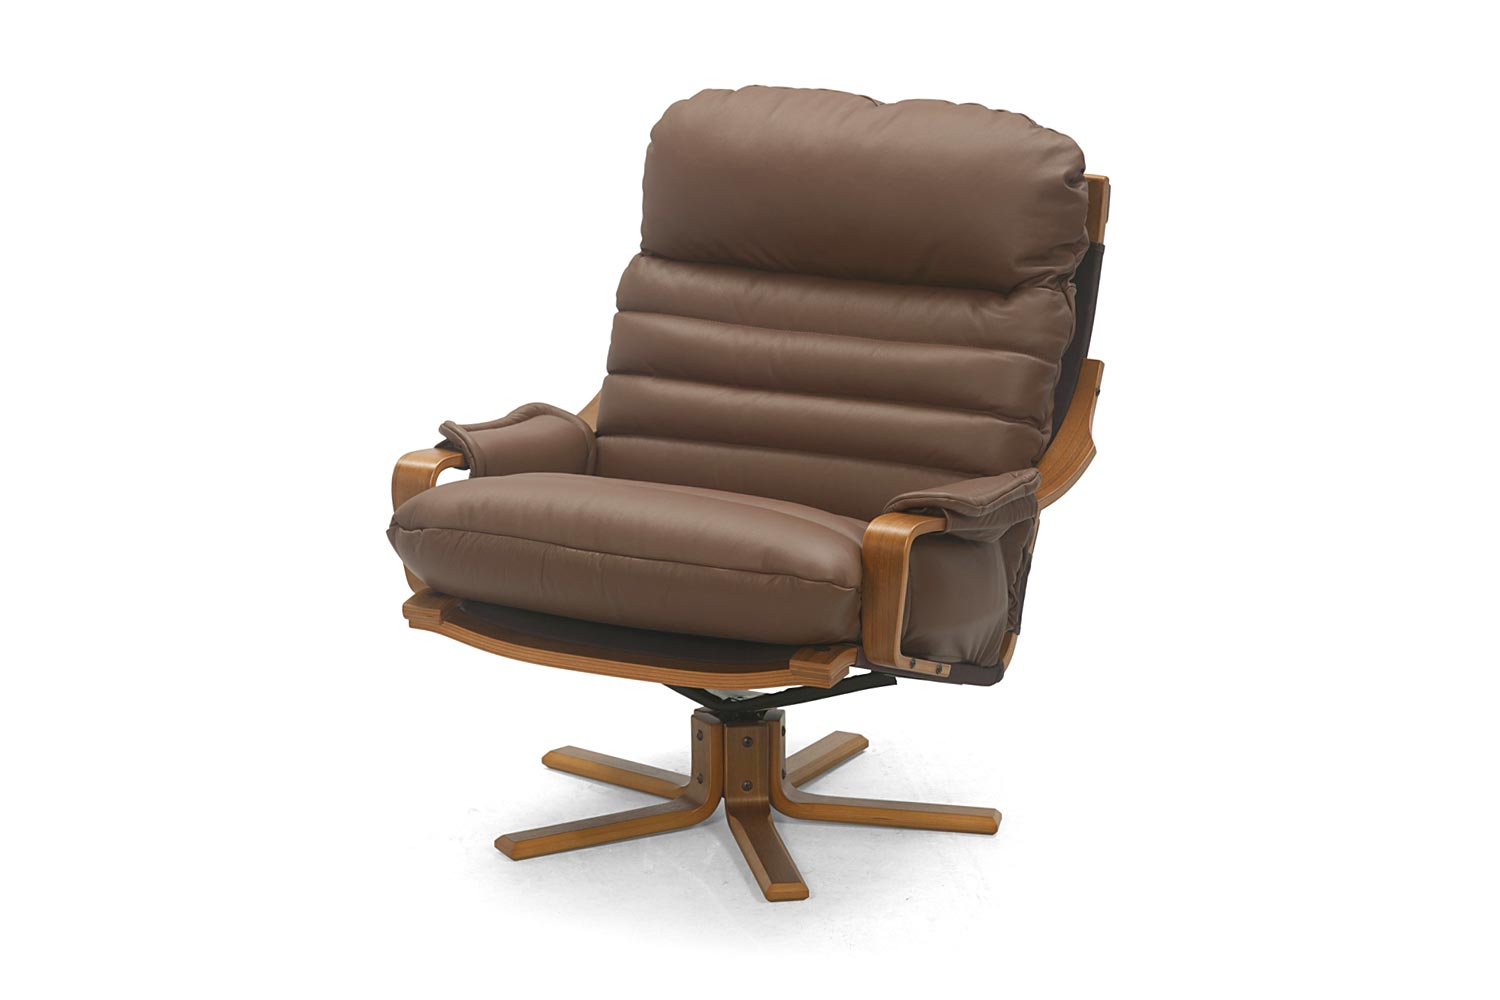 Swival Chairs Austin Swivel Chair Tessa Furniture